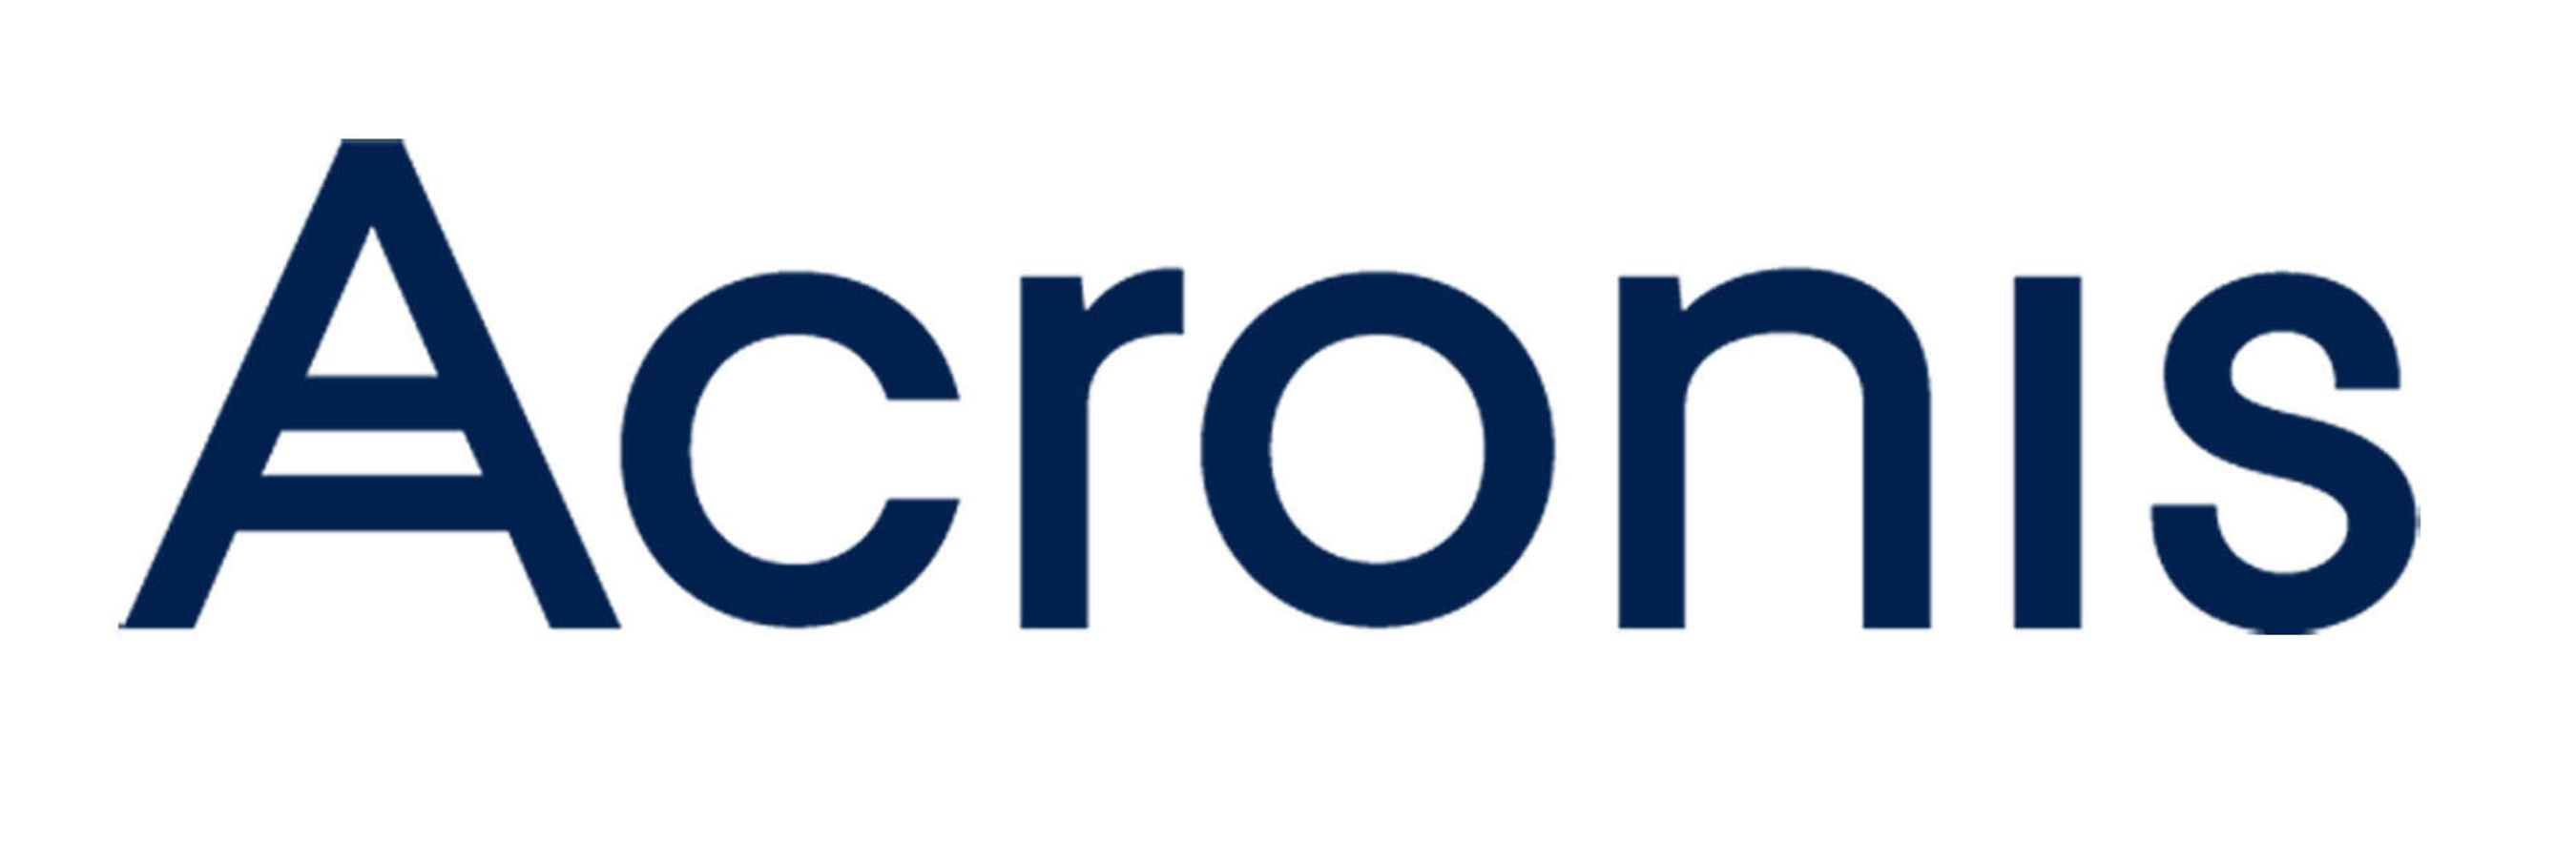 Independent Research Firm Network Testing Labs Finds Acronis Backup 12 is Two Times Faster than Closest Competitor